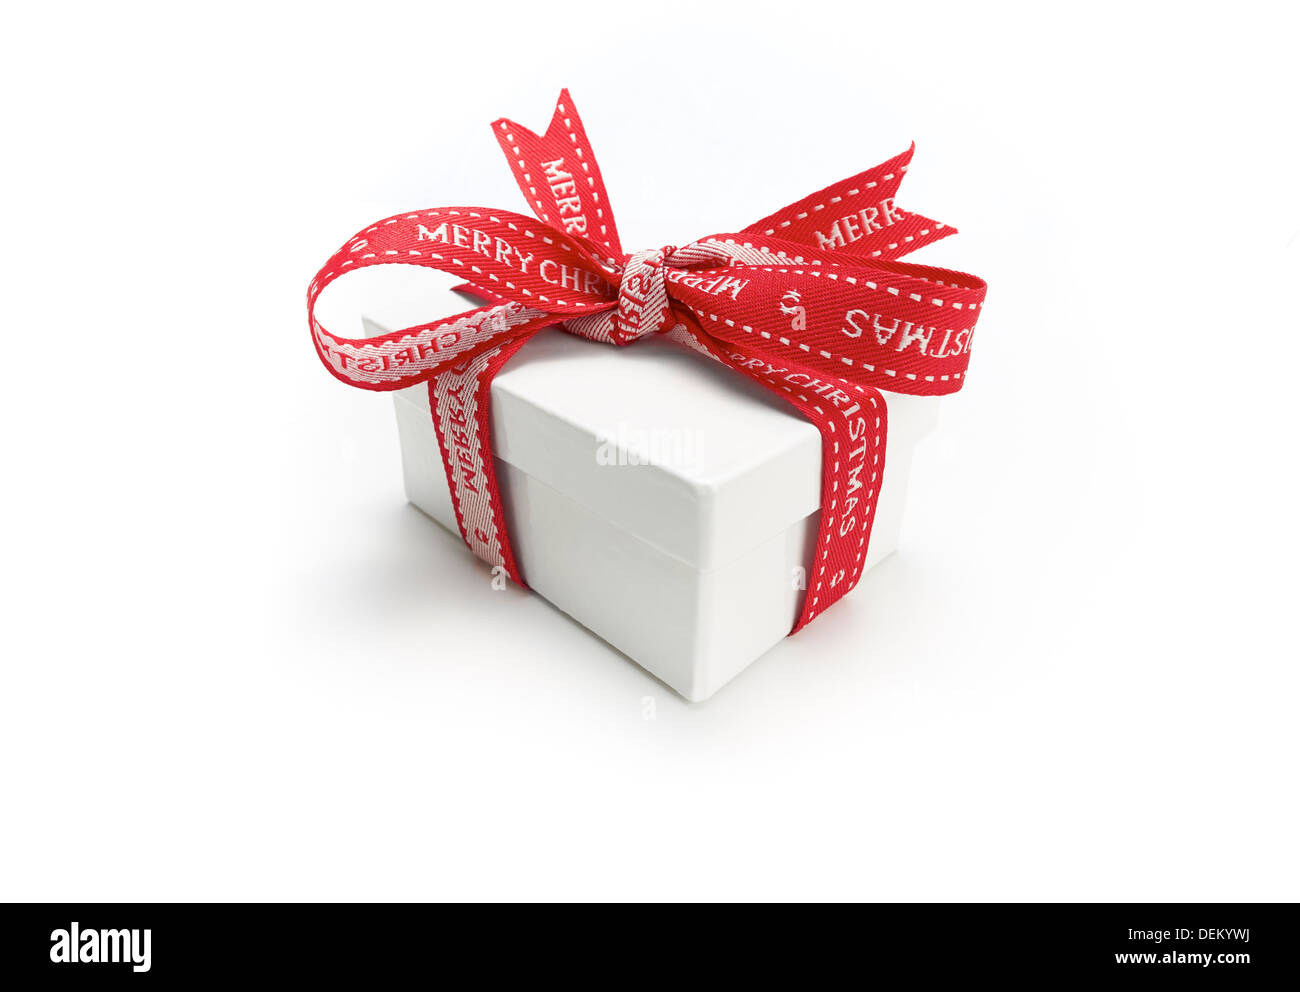 A wrapped Christmas present with a colourful red ribbon bow on a white background. Stock Photo